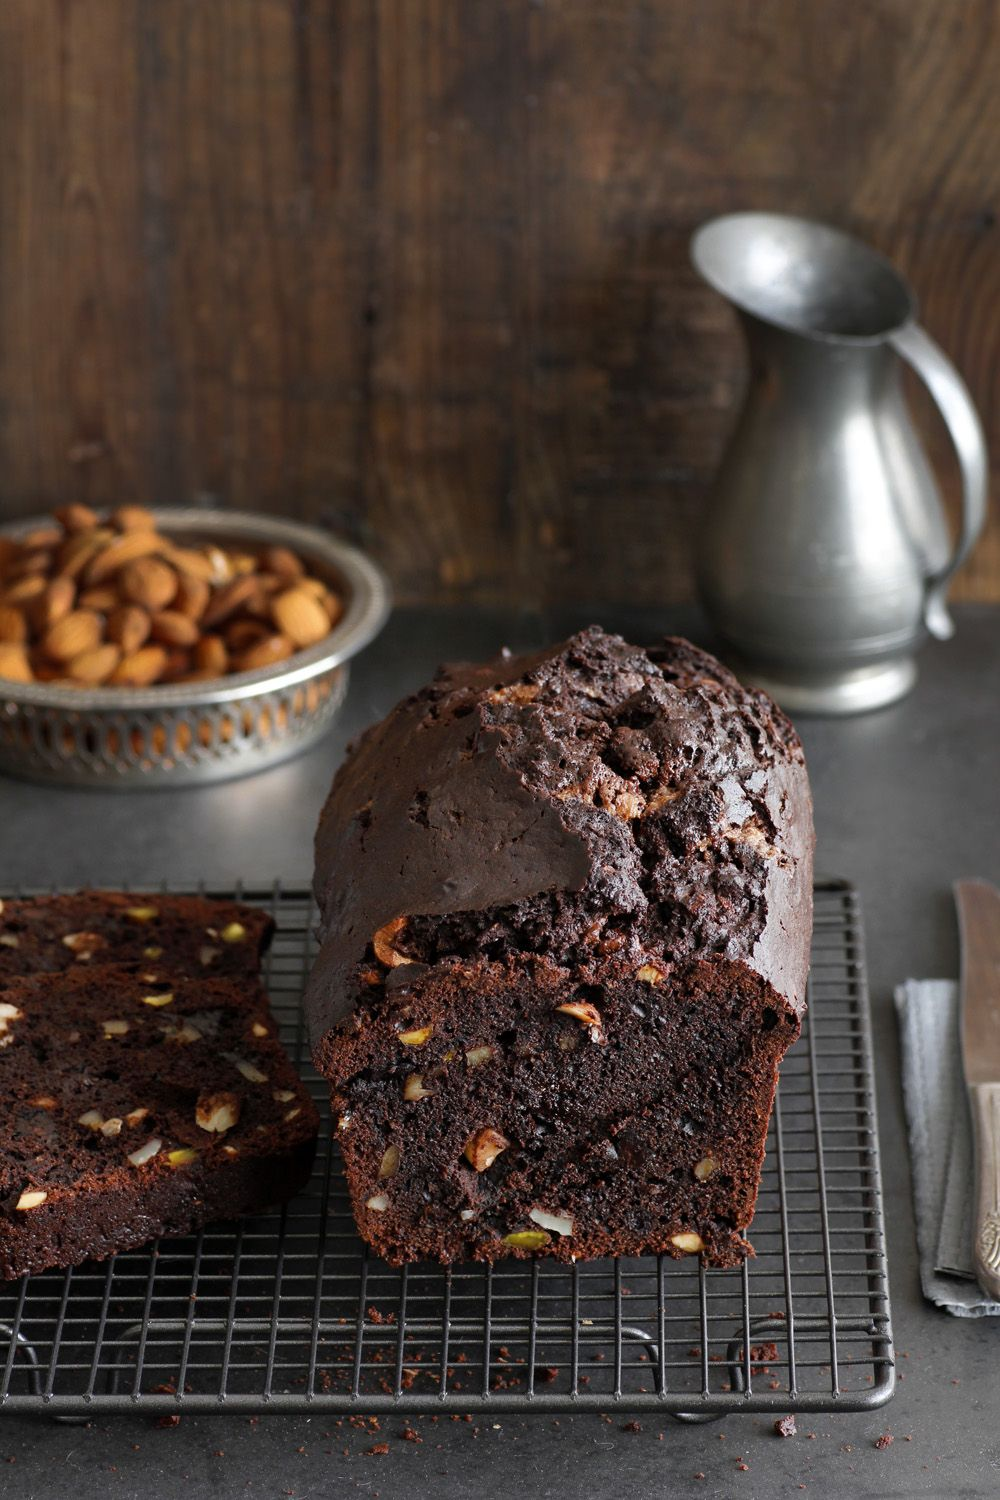 Pierre Herme's Chocolate Cake with Nuts